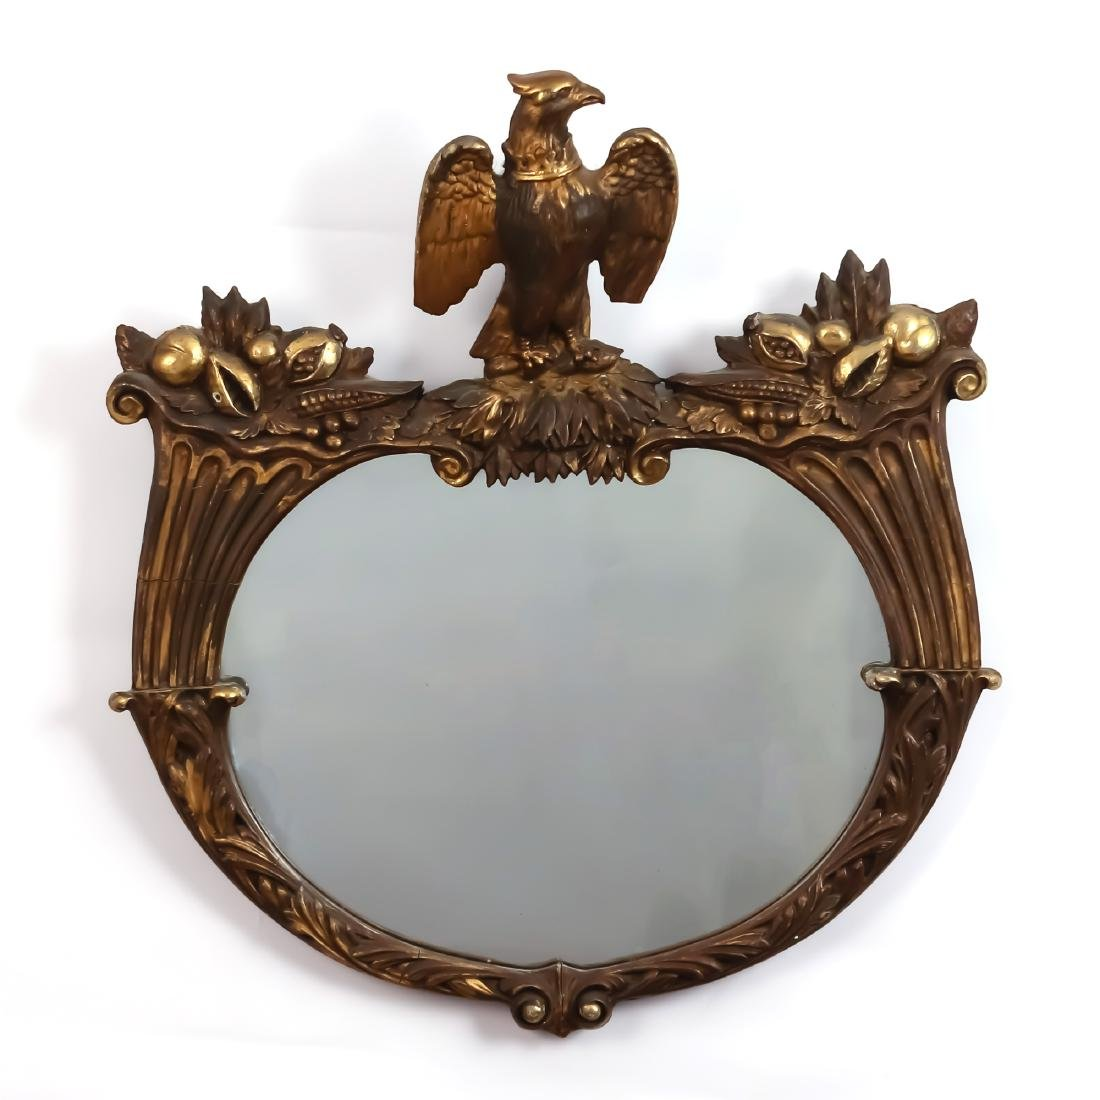 FEDERAL GILTWOOD EAGLE MIRROR